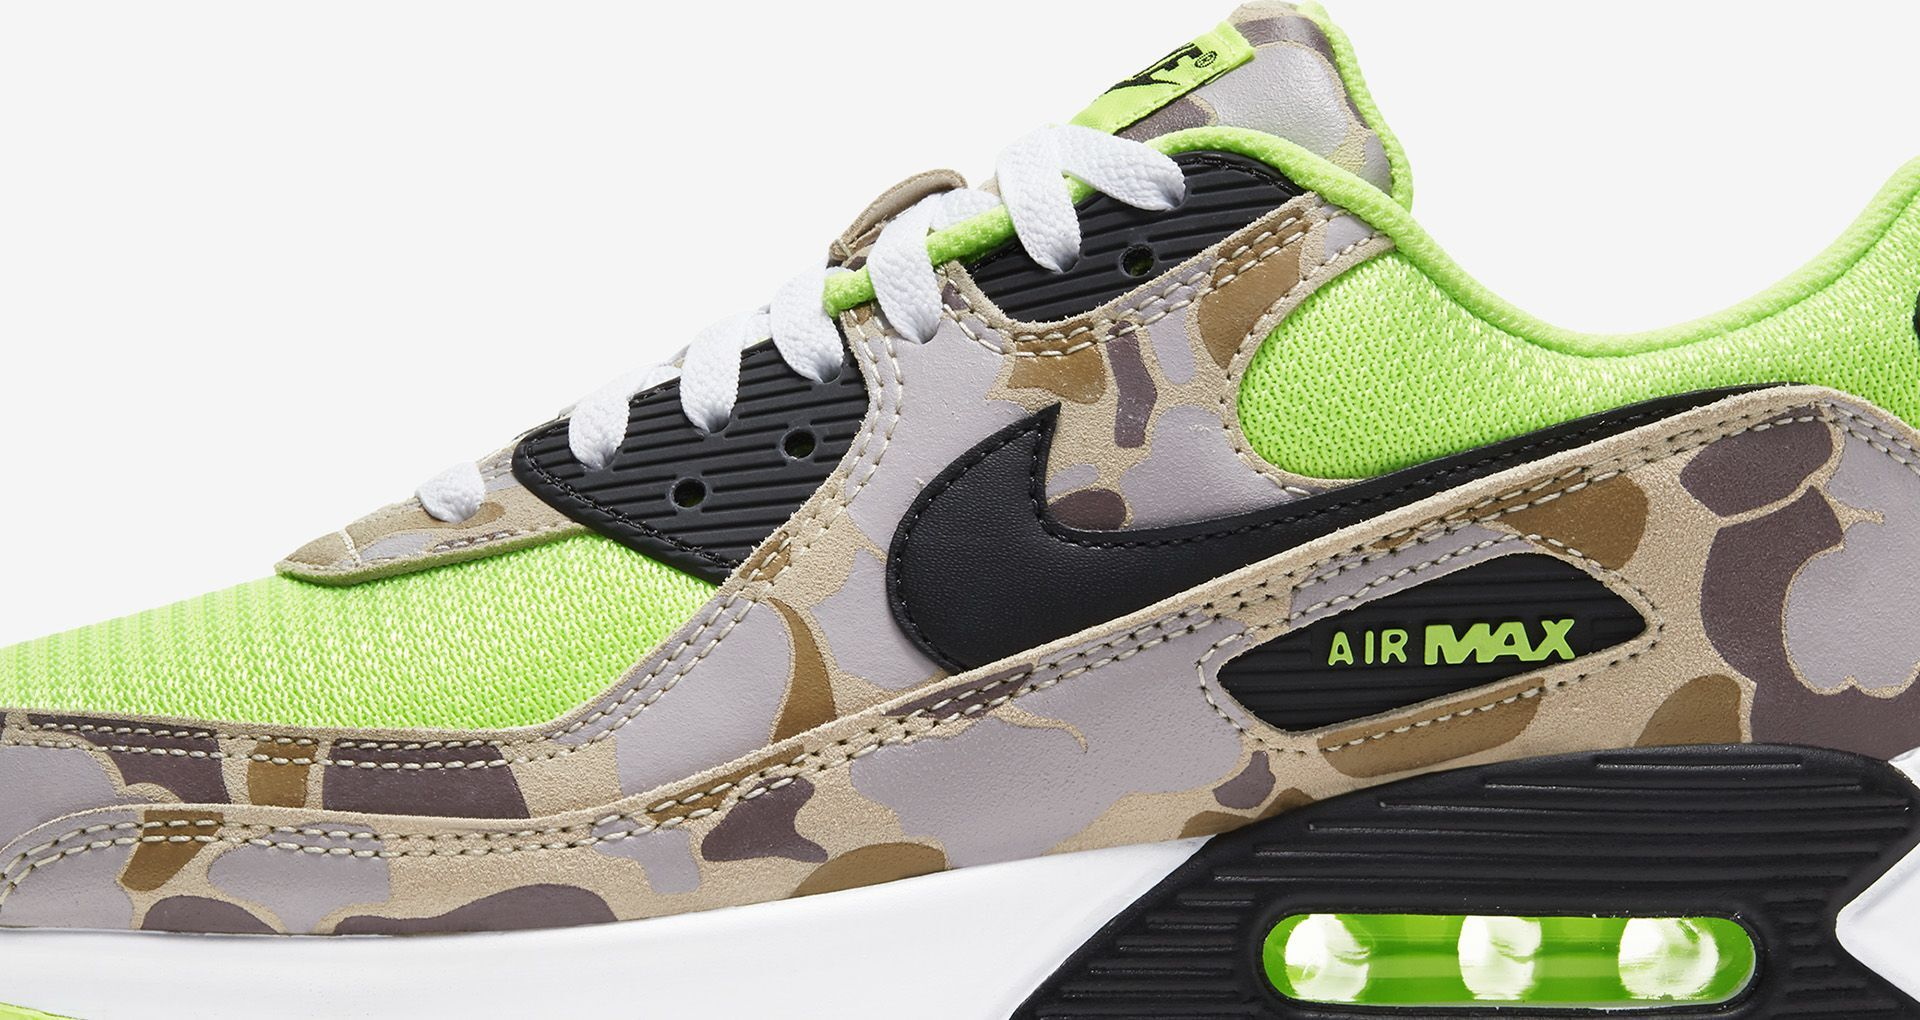 The Air Max 90 SP 'Green Camo' raffle is now open